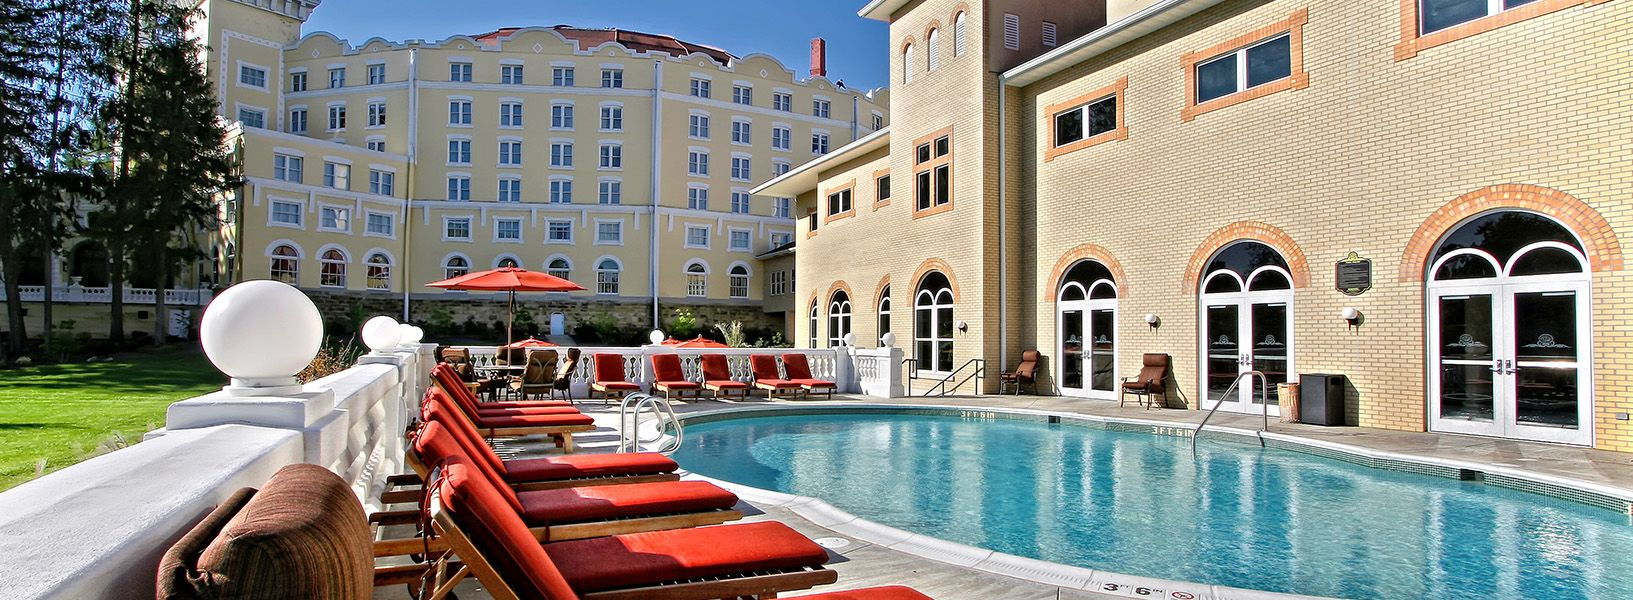 West Baden Springs Hotel Indiana Named S Best By